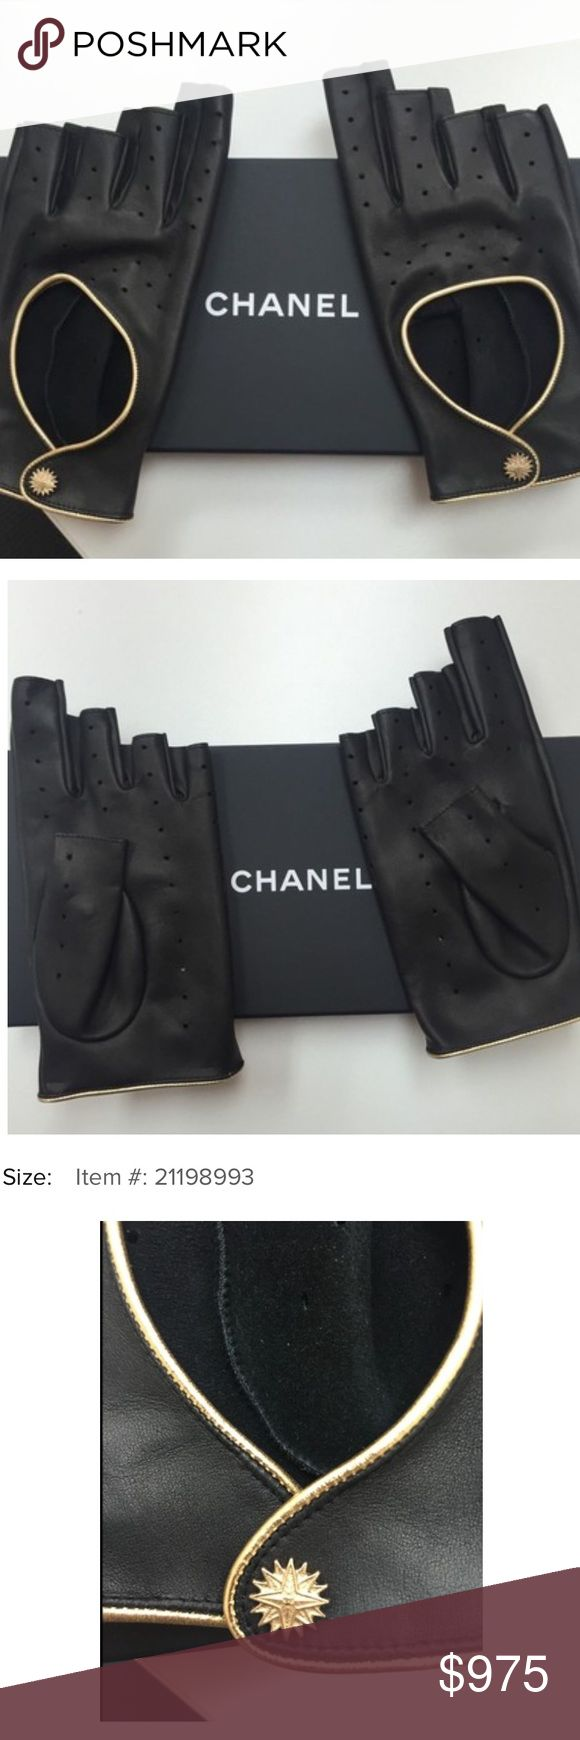 Leather driving gloves gold coast - Nwt Chanel Leather Fingerless Driving Gloves Chanel Driving Gloves Fingerless Black Leather With Gold Trim